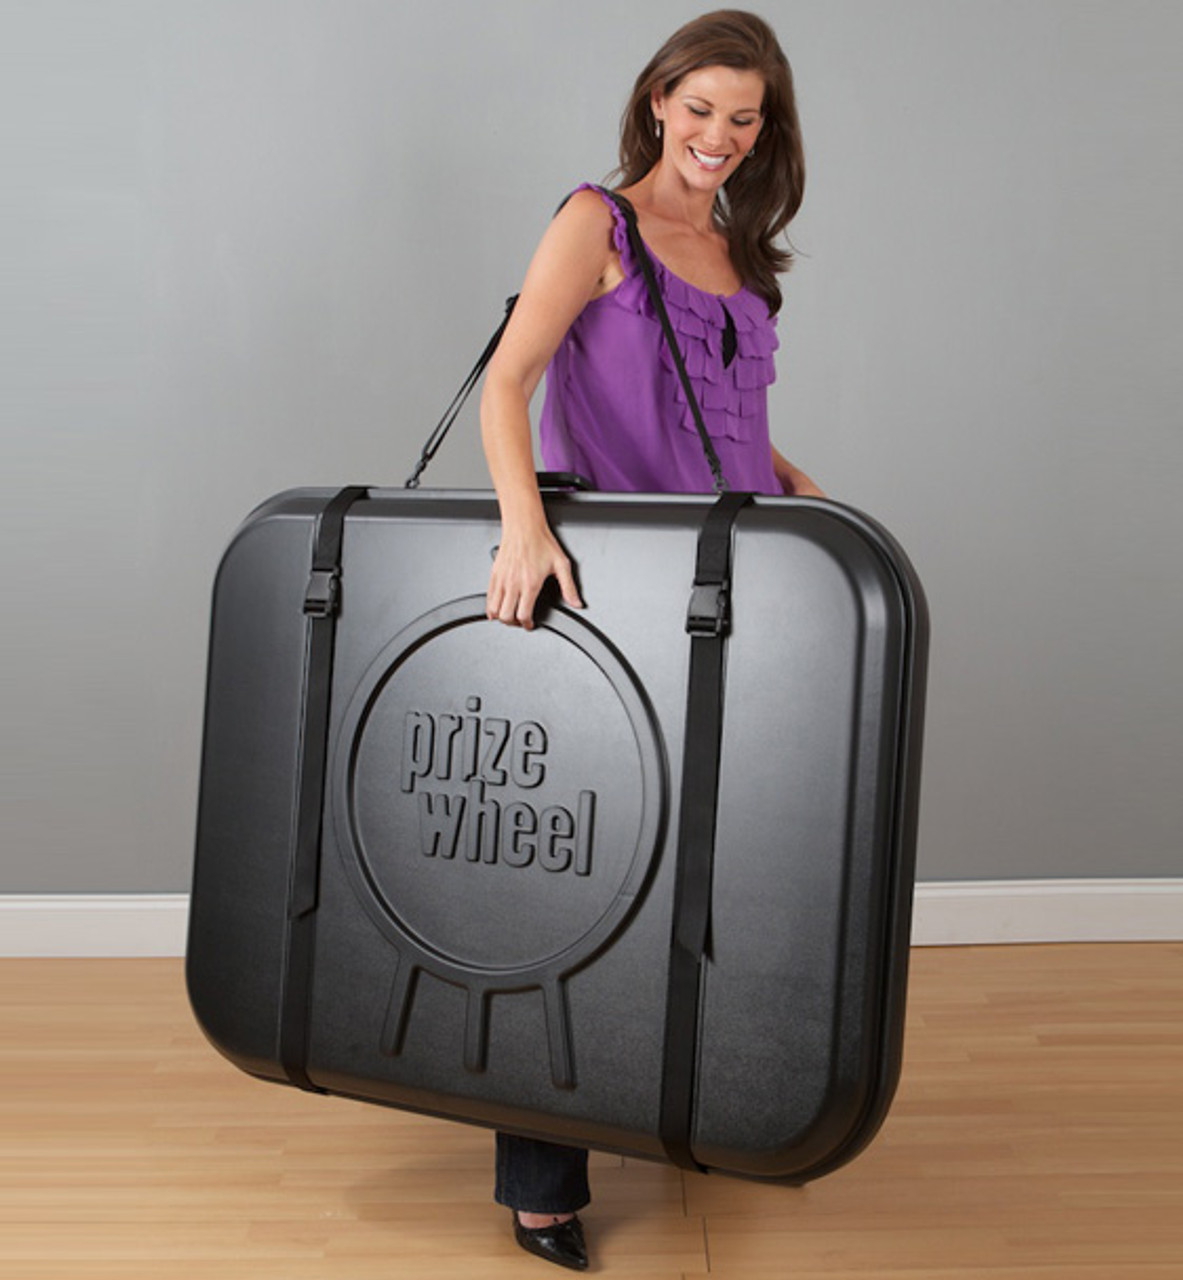 Travel Case for 31-inch Prize Wheel; carried by woman